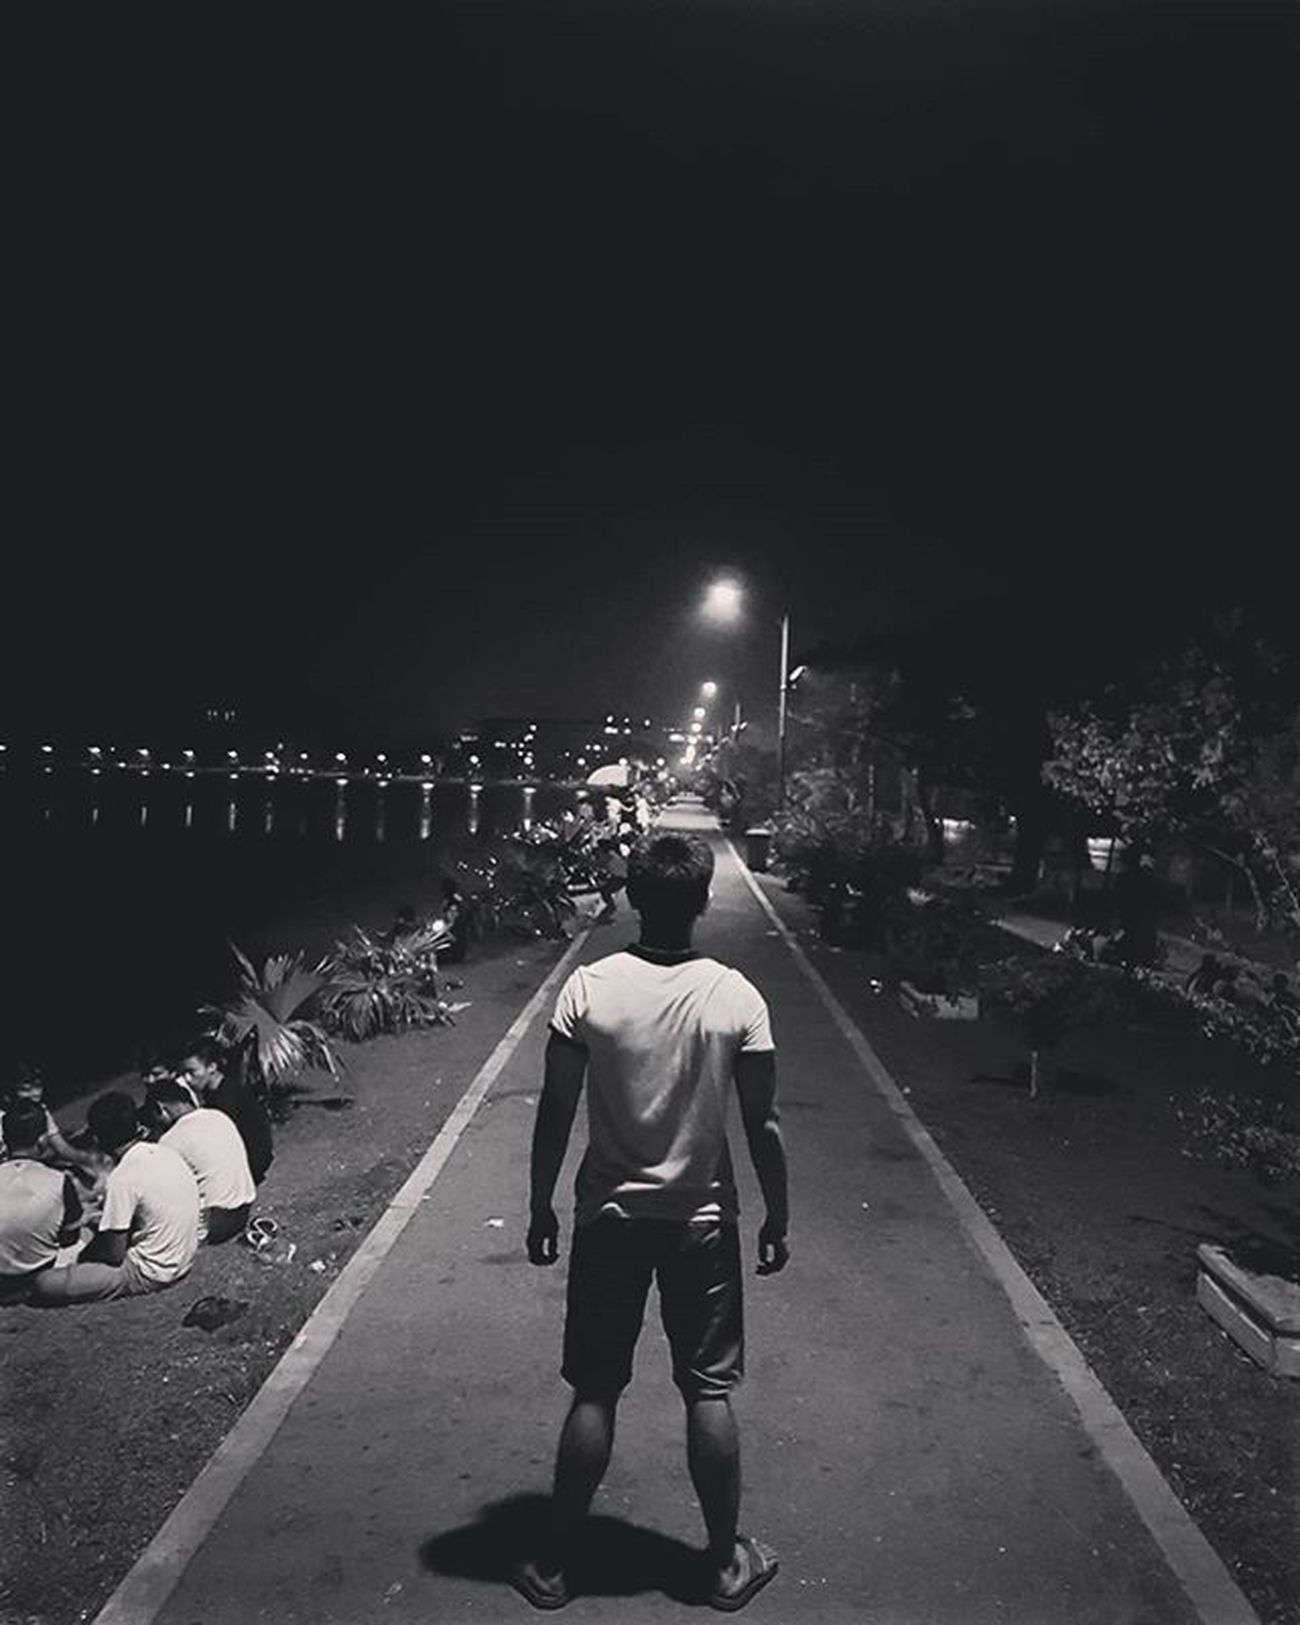 Inya Inyalake Igersmyanmar Myanmar Burma Yangon Rangoon Lake Instagood Mobilephotography Mobilephoto GalaxyS7Edge Promode S7promode Light Lighting Travelgood Choose2create Vacationinstyle Yourworldgallery AOV Artofvisuals Blackandwhite Blacknwhite Bnw instaclickoftheweek instaclickoftheday